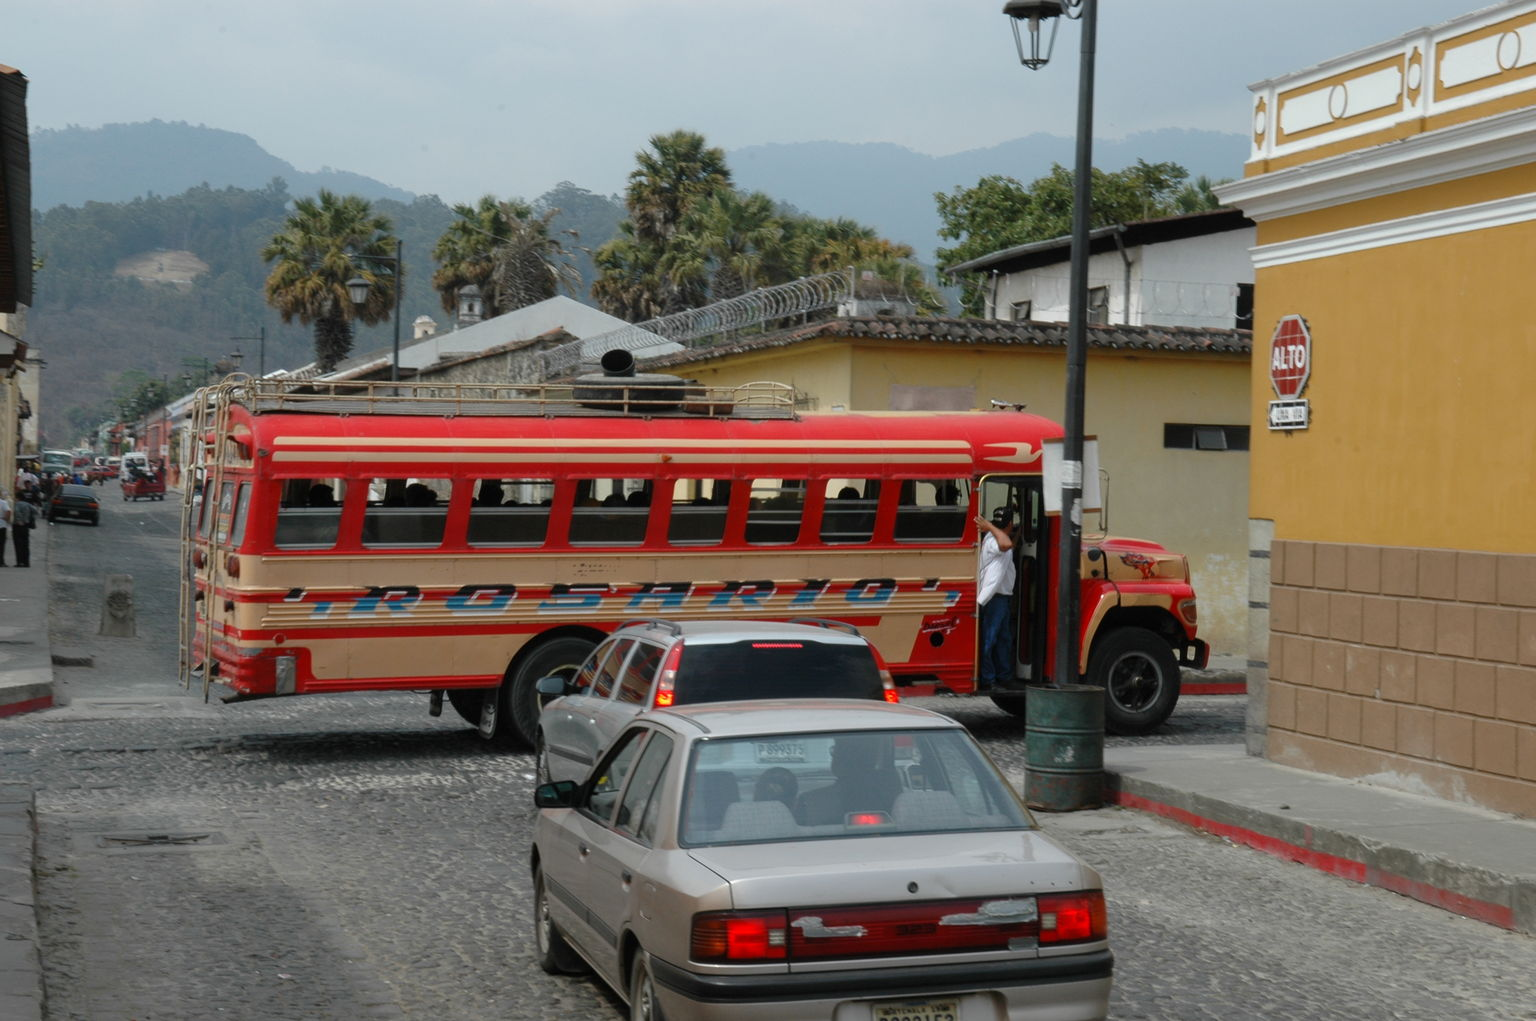 As the chicken buses careened through the streets of Guatemala, an intrepid individual would often hang out the open door to motion to traffic and pedestrians to get out of the way, providing a convenient and friendly way of letting people know their lives were in danger.